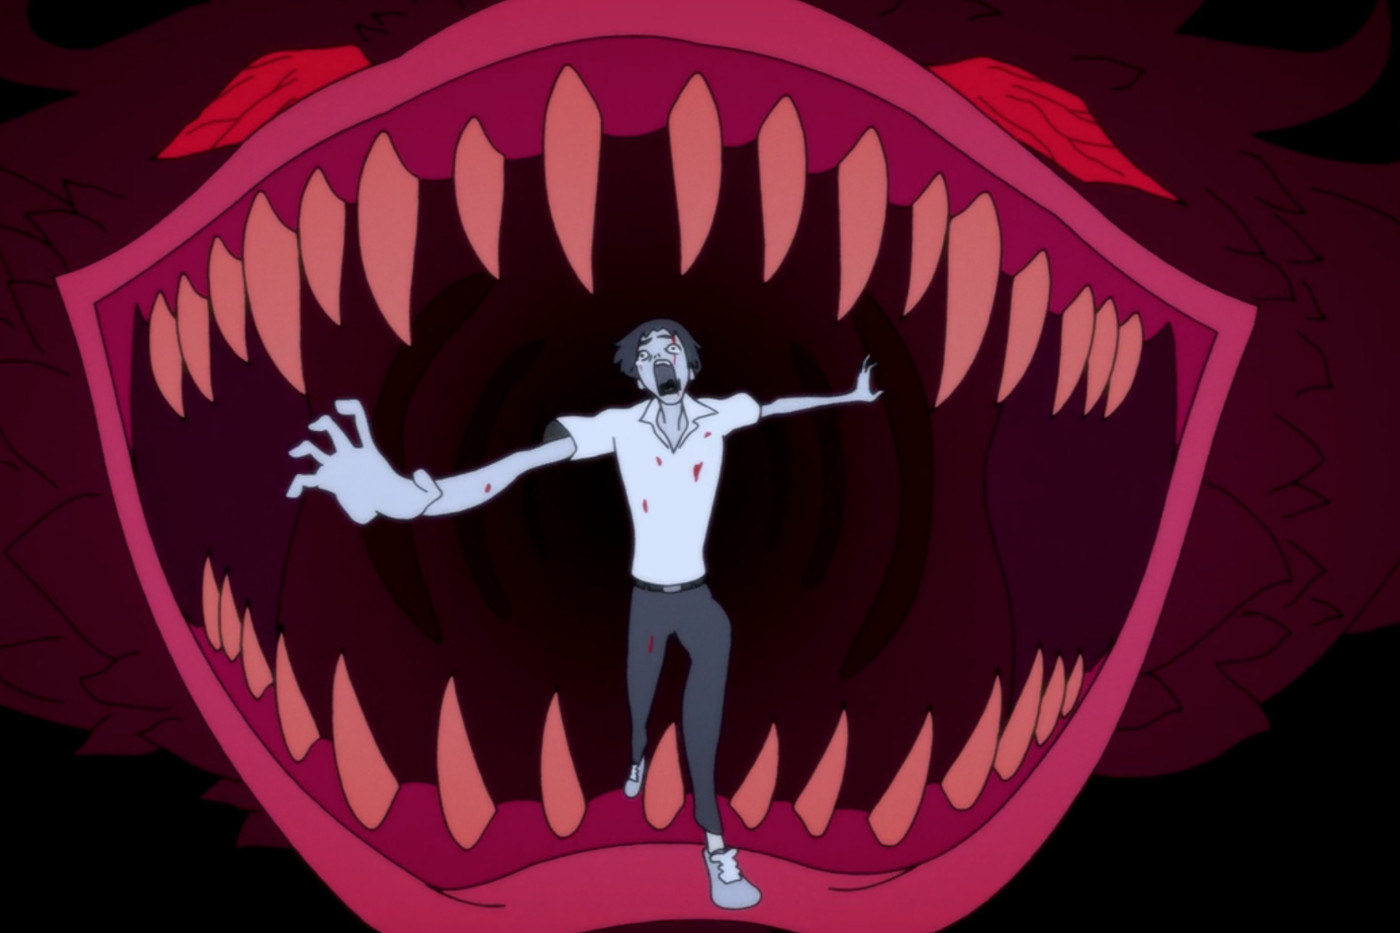 animated man wears a polo and pants, runs out of a mouth with sharp teeth